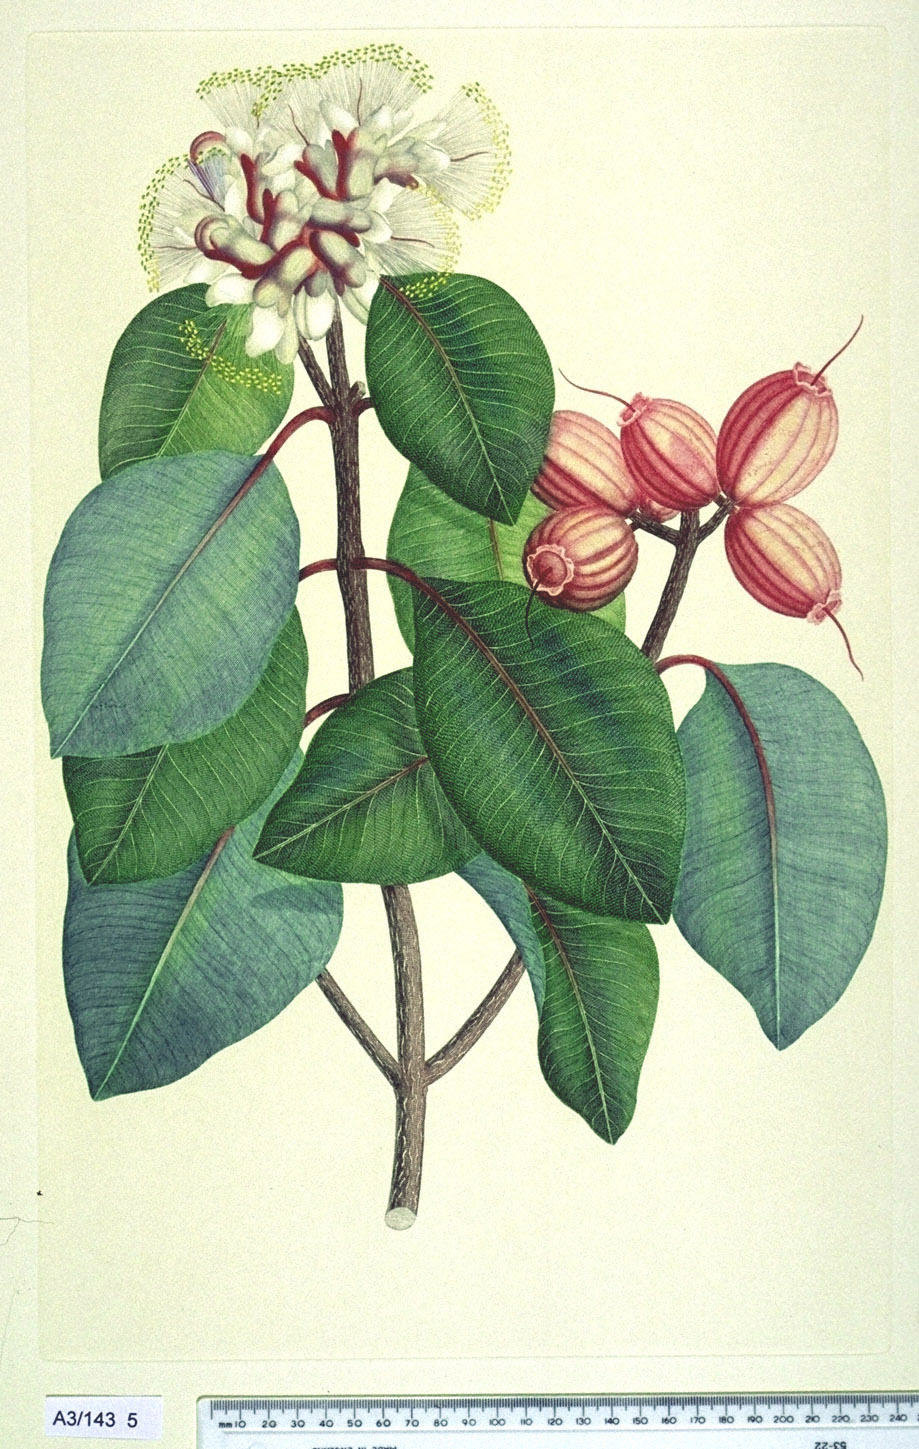 Syzygium Suborbiculare - approx. actual size - this image digitally watermarked and copyright NHM